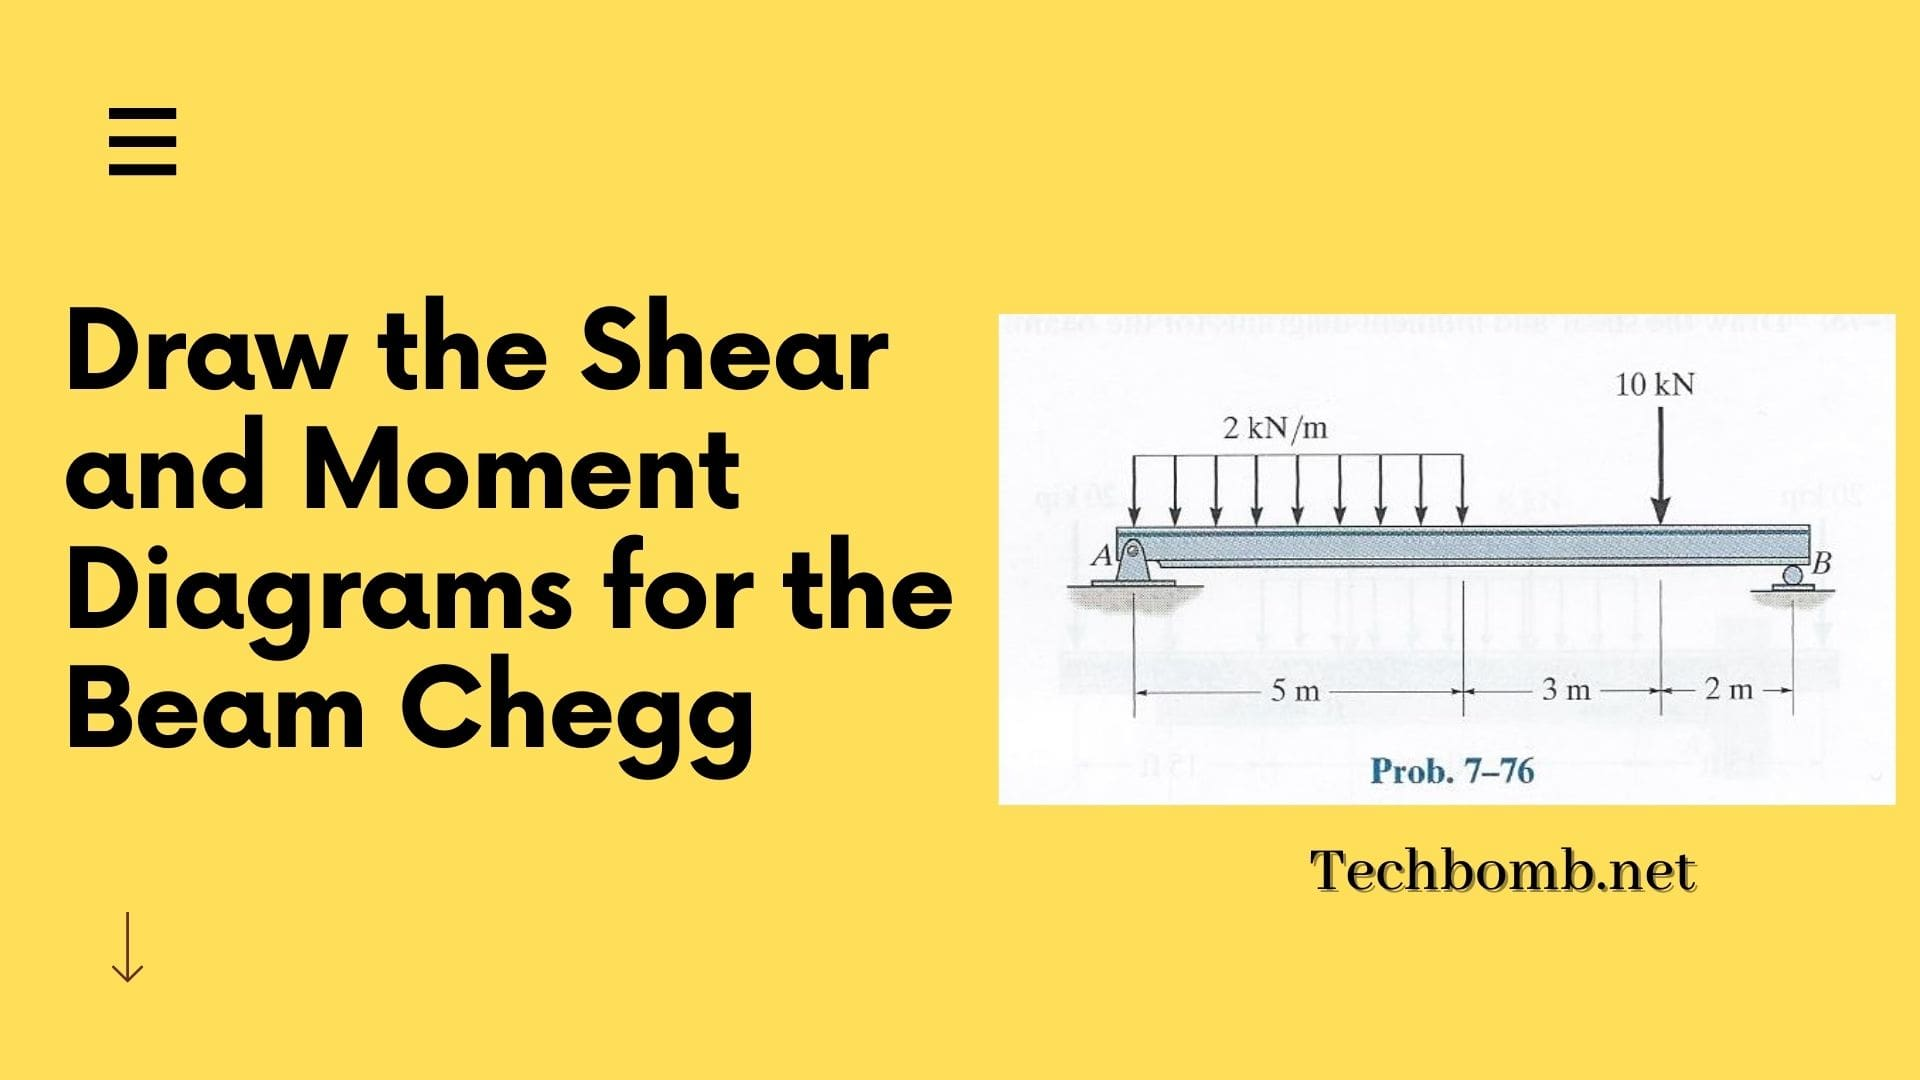 [Solved] Draw the Shear and Moment Diagrams for the Beam Chegg